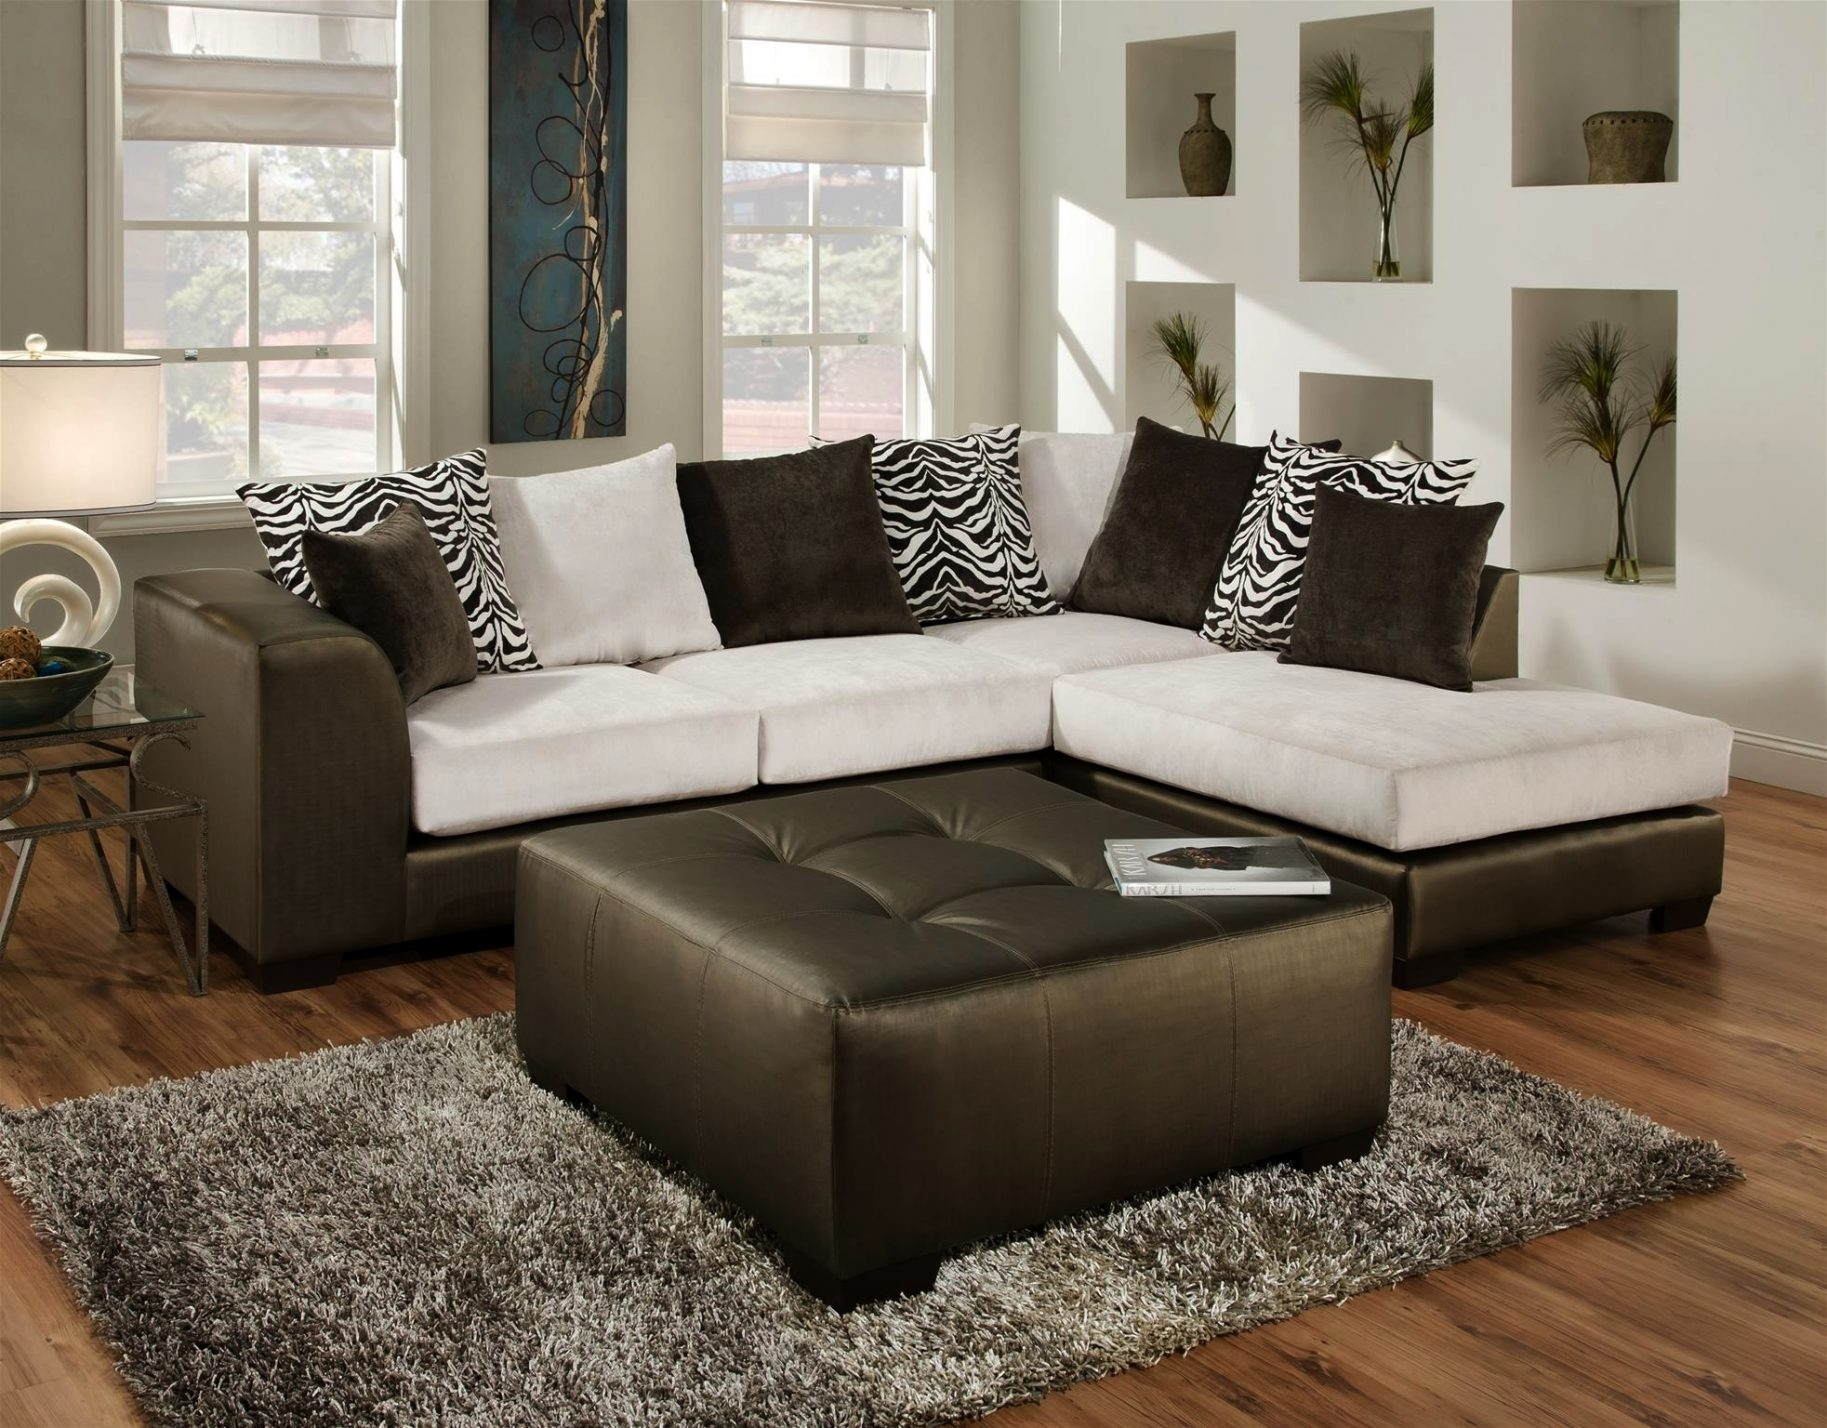 New Sectional Sofas Tampa 14 In 10 Foot Sectional Sofa With Intended Regarding Tampa Sectional Sofas (Image 5 of 10)